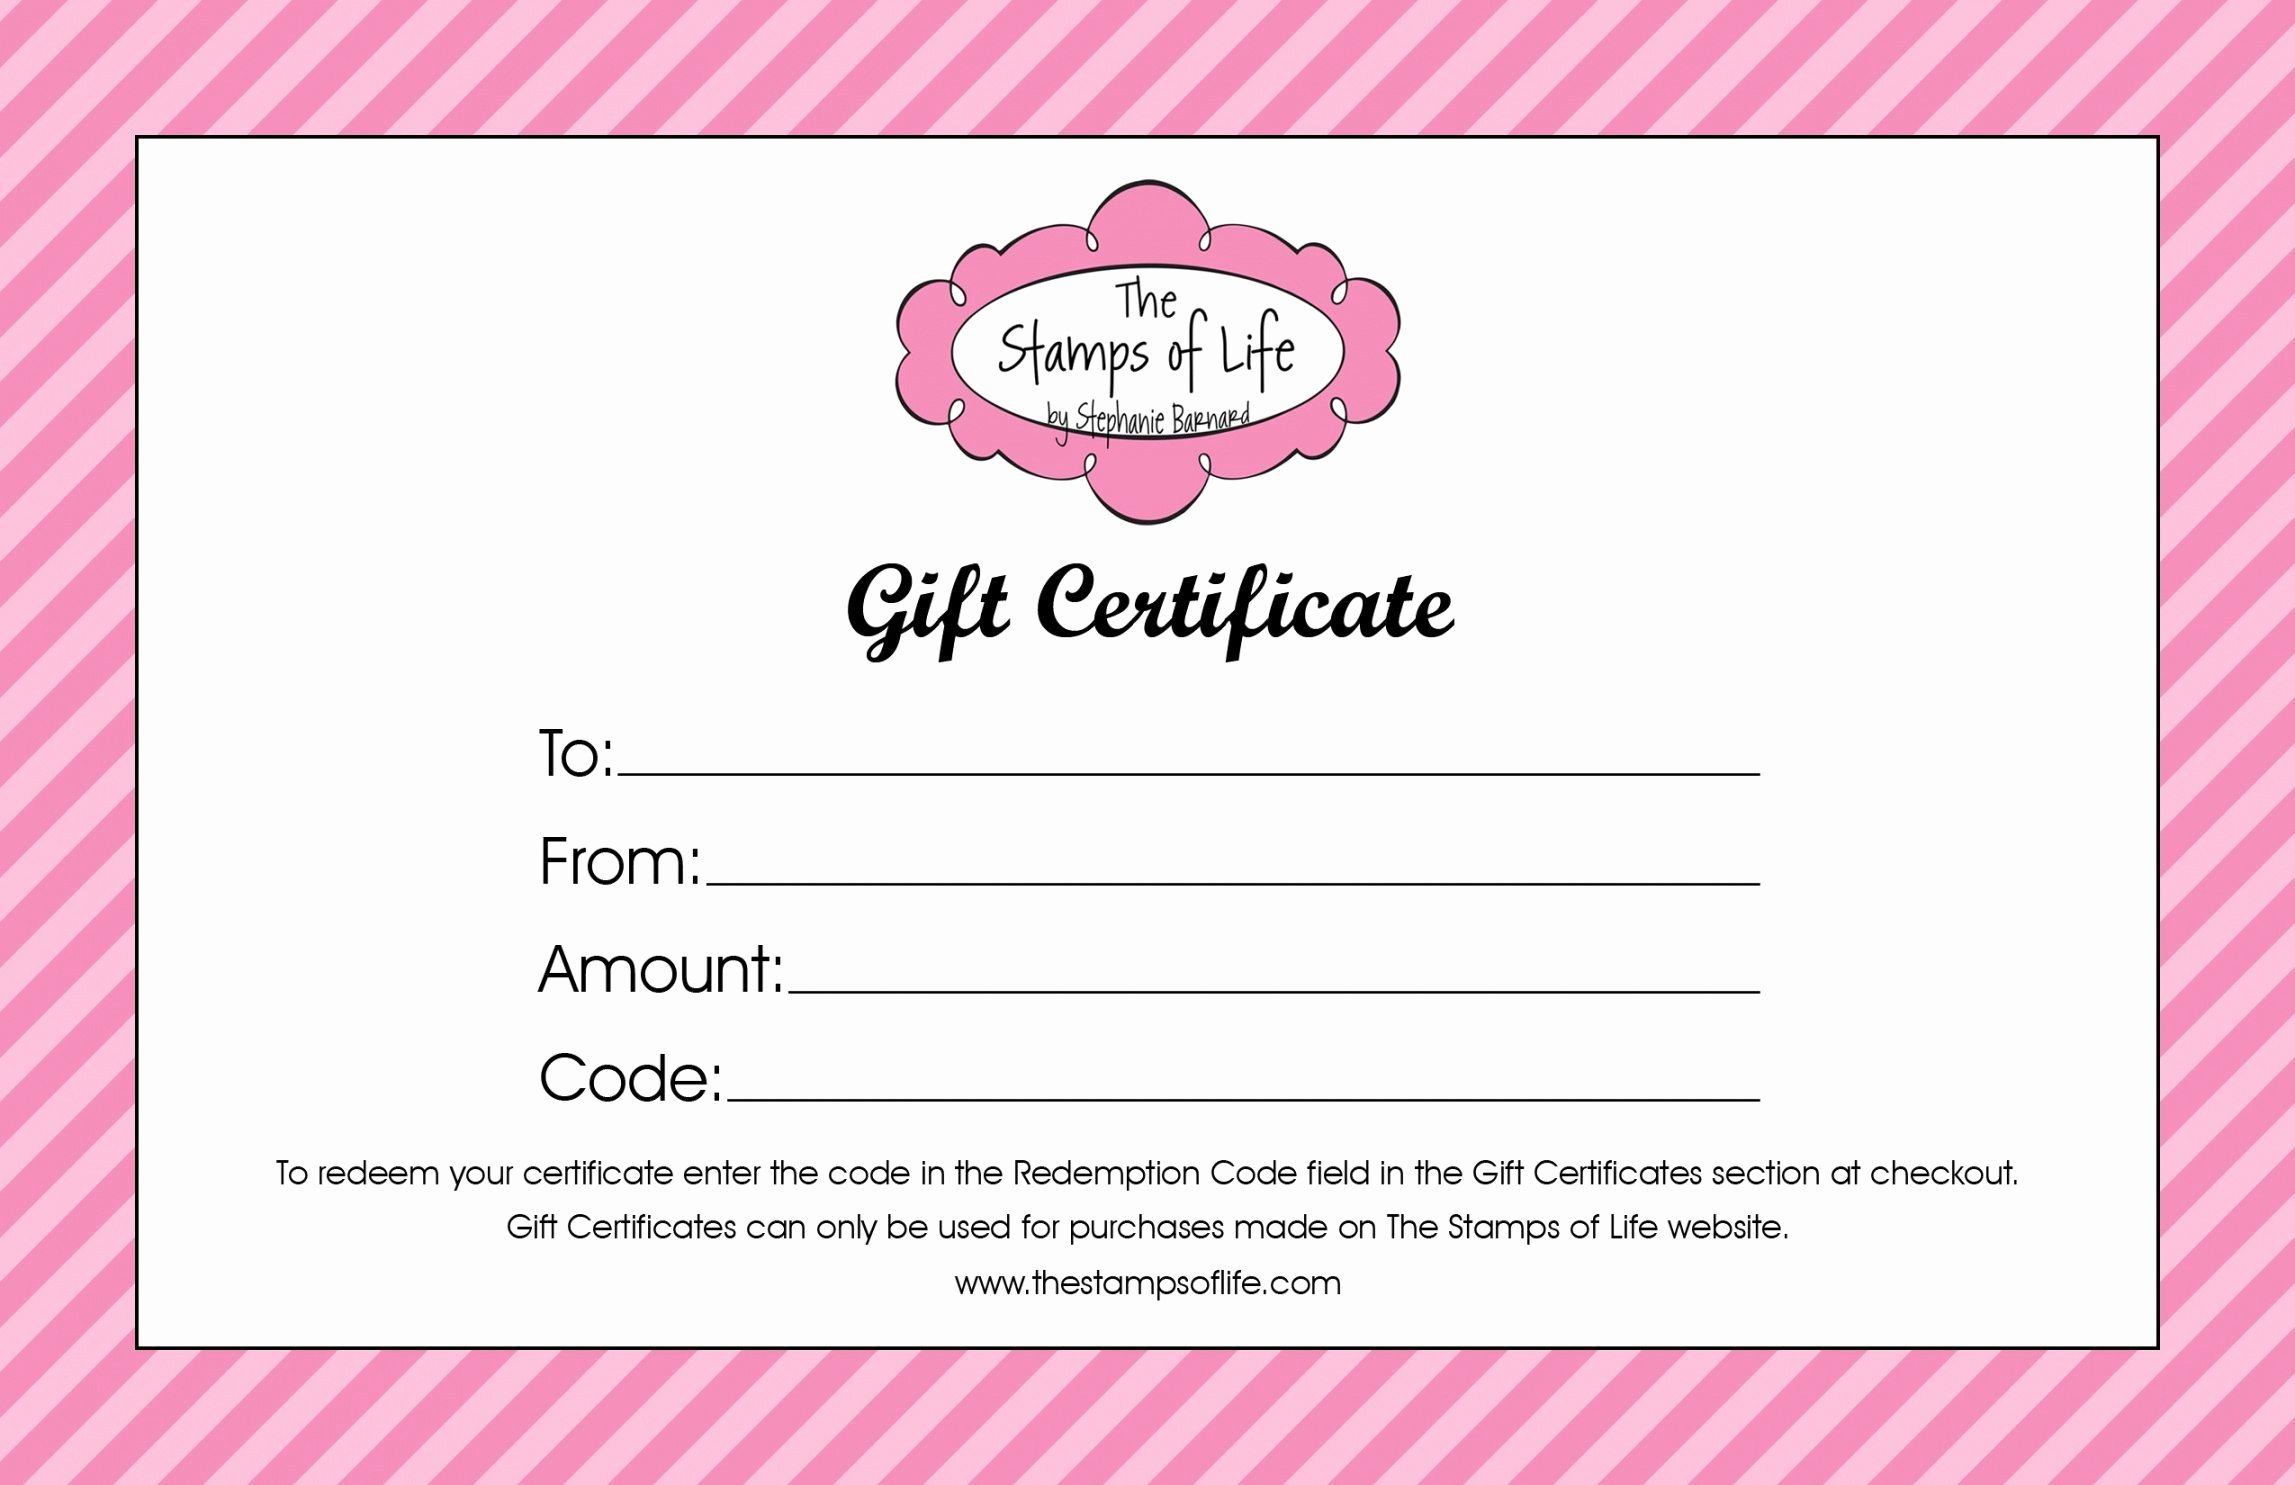 Hair Salon Gift Certificate Template Free Elegant Hair Salon Gift Certificate Template